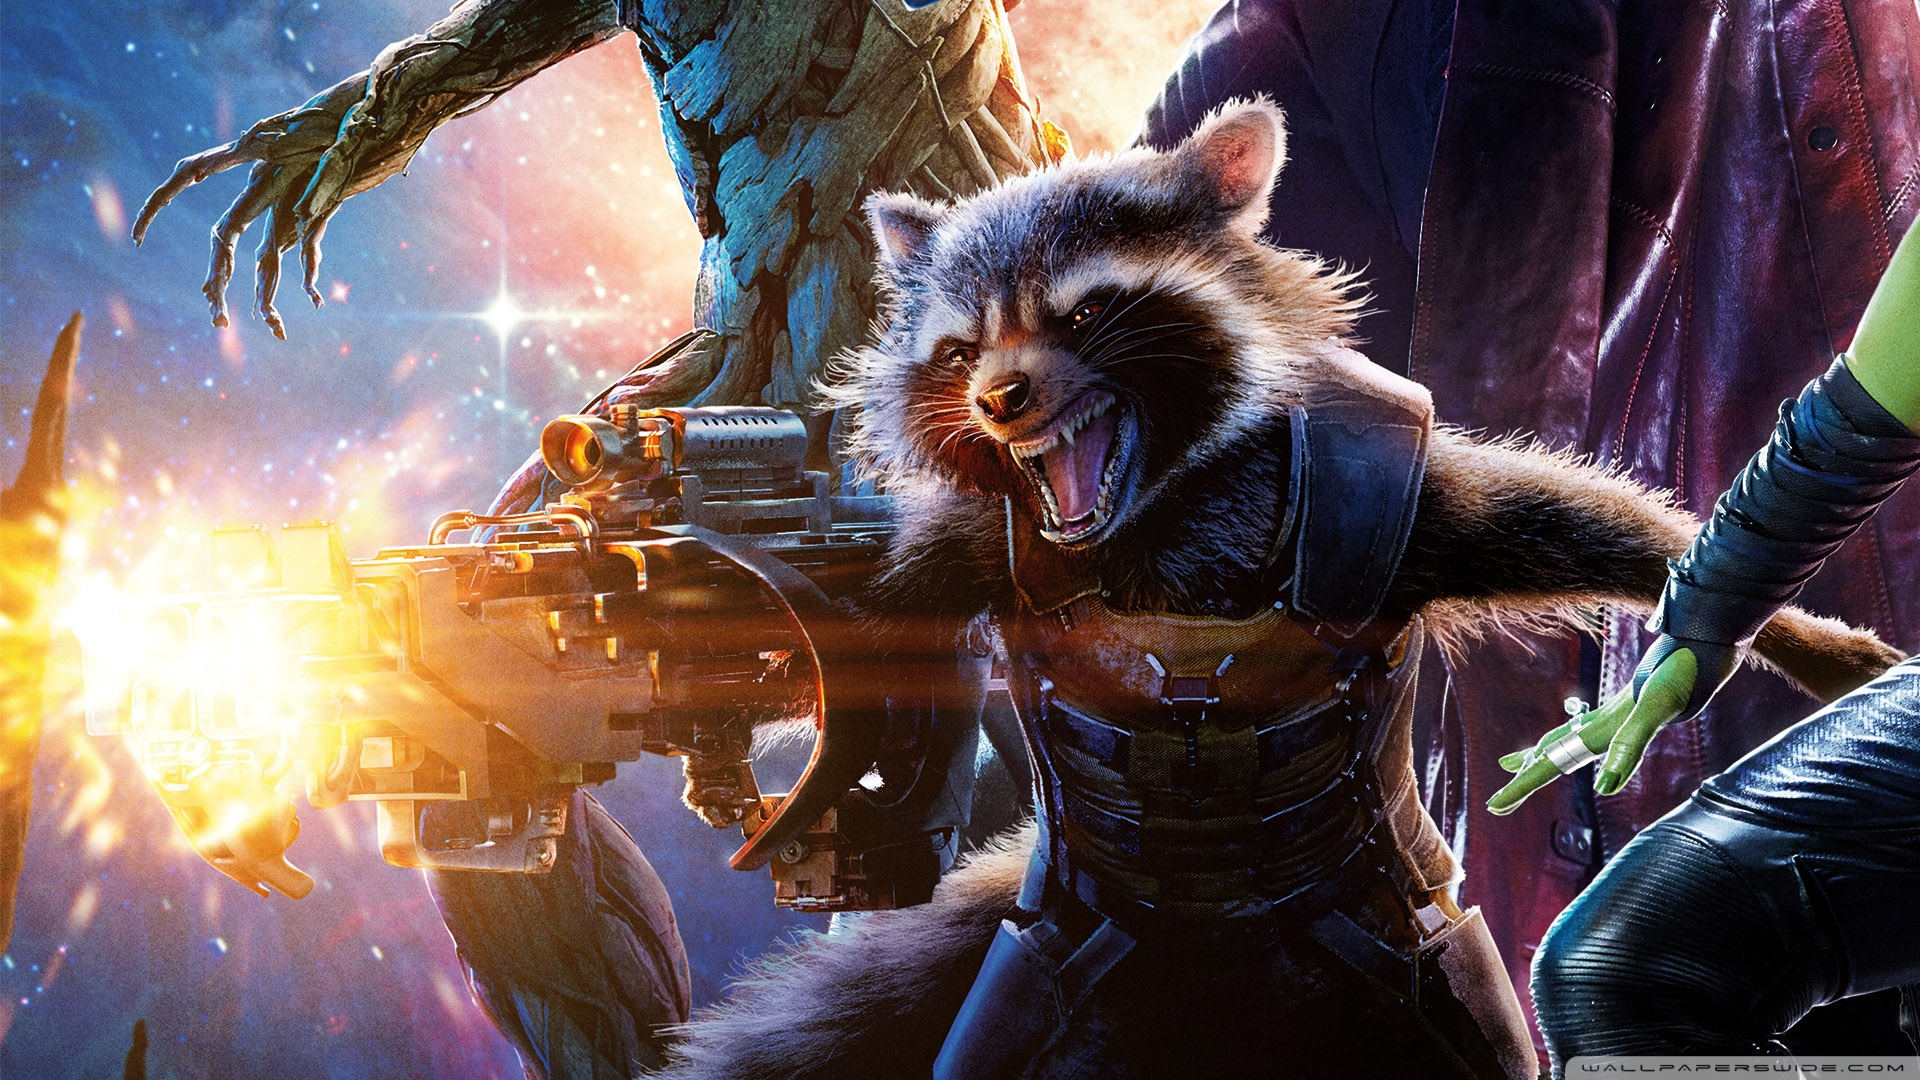 Guardians-Of-The-Galaxy-Rocket-Raccoon-HD-1920x1080-Need-iPhone-S-Plus-wallpaper-wp3606454